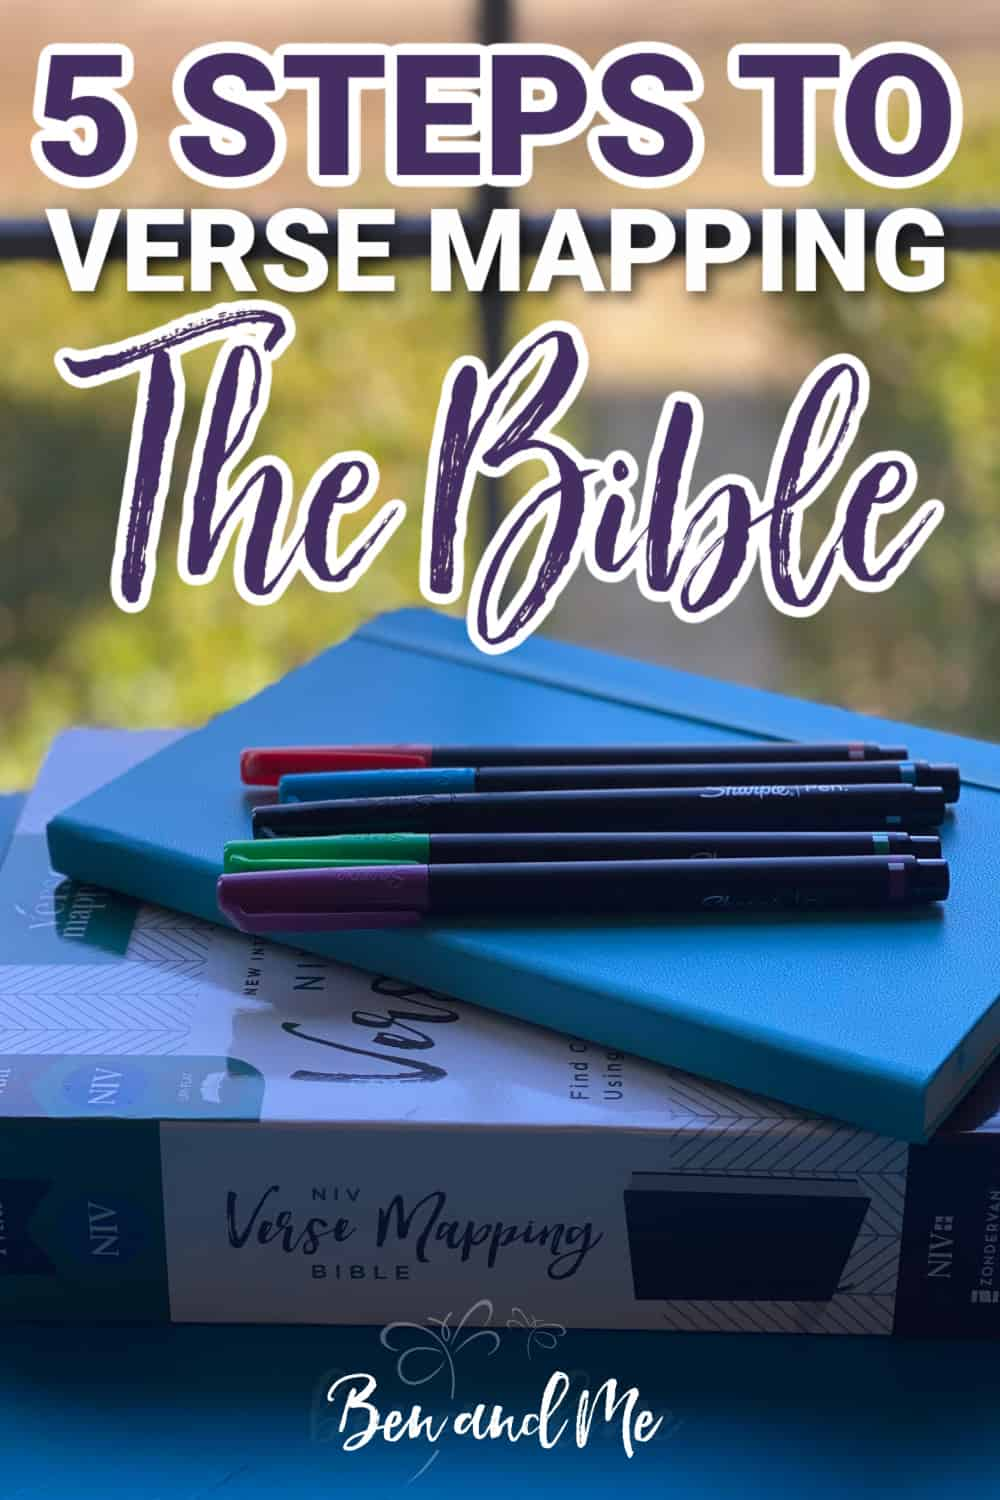 verse mapping the Bible